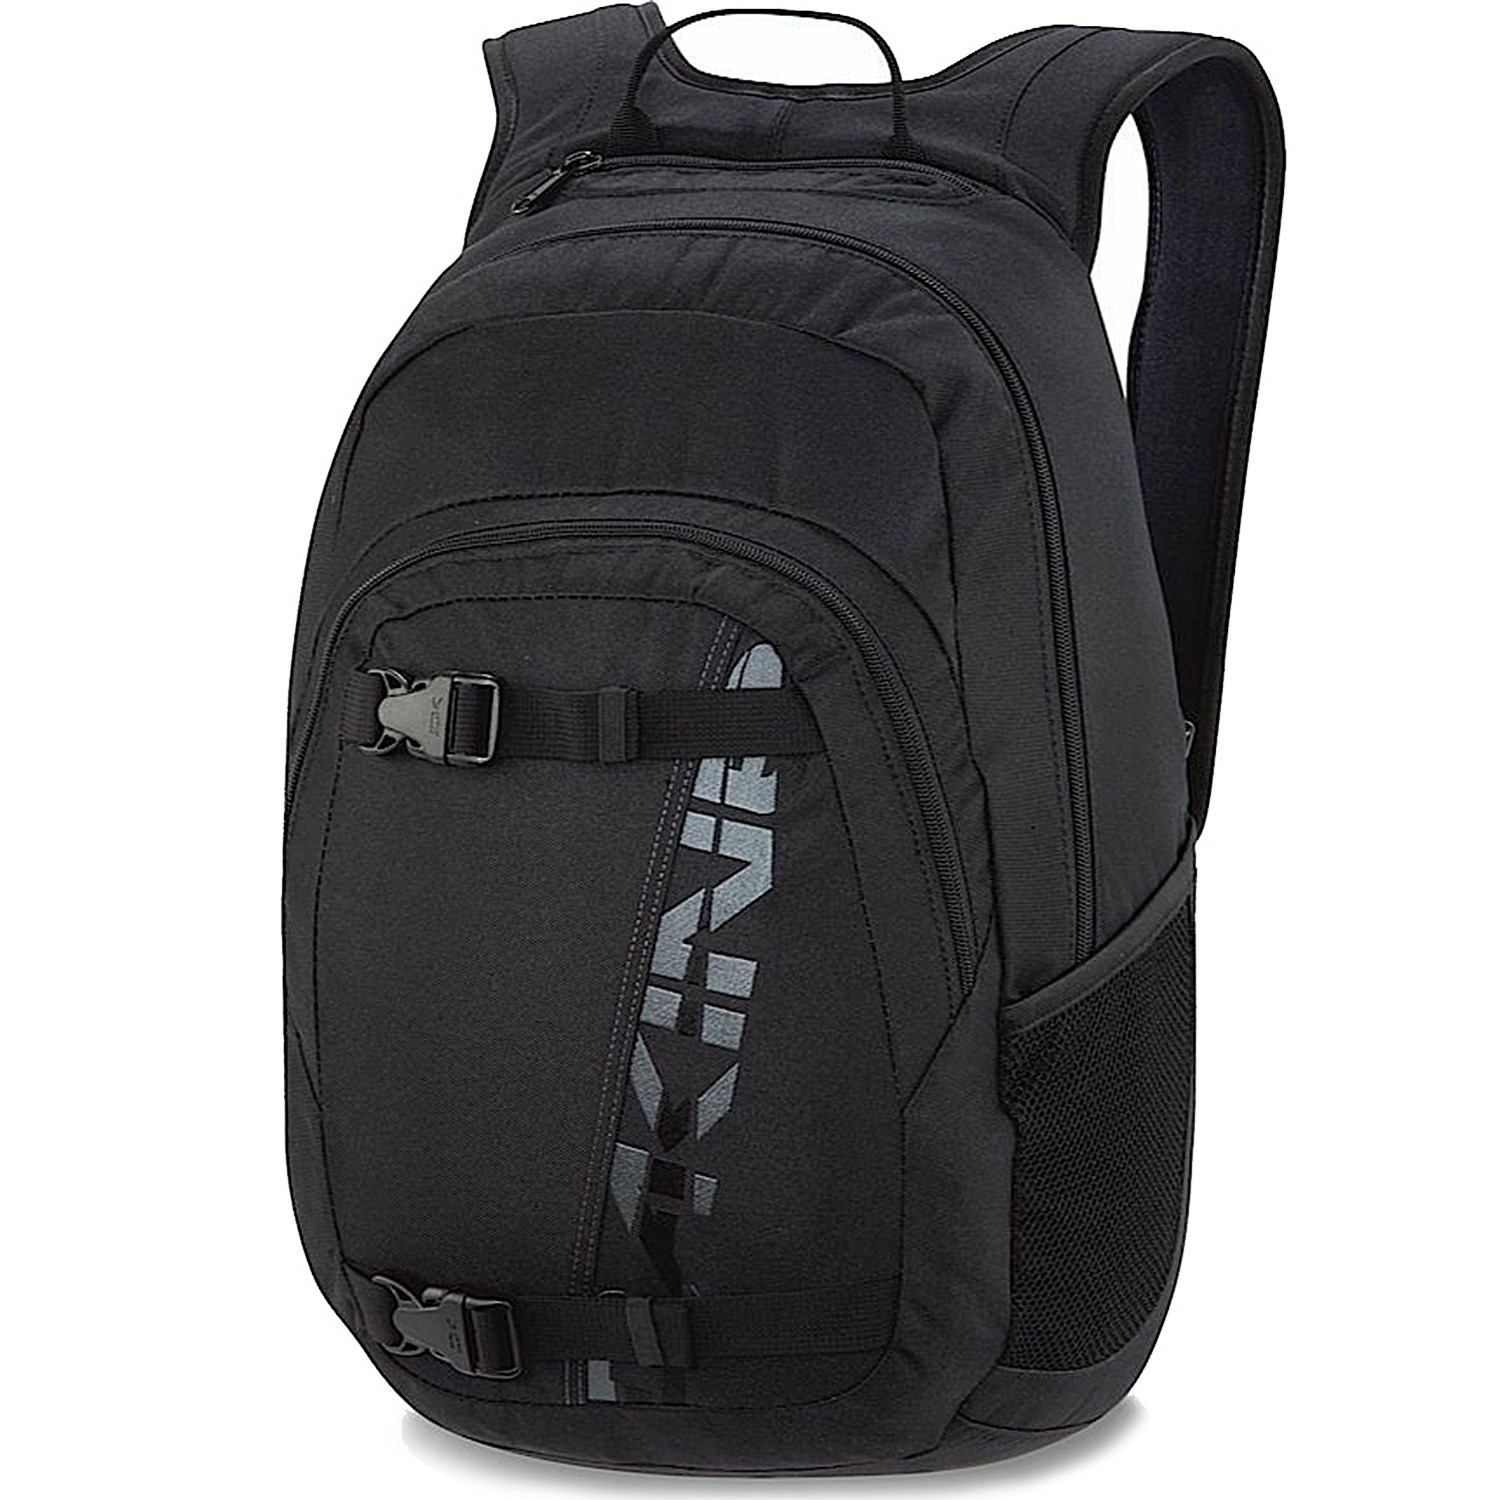 DaKine Point 29L Wet/Dry Backpack | evo outlet